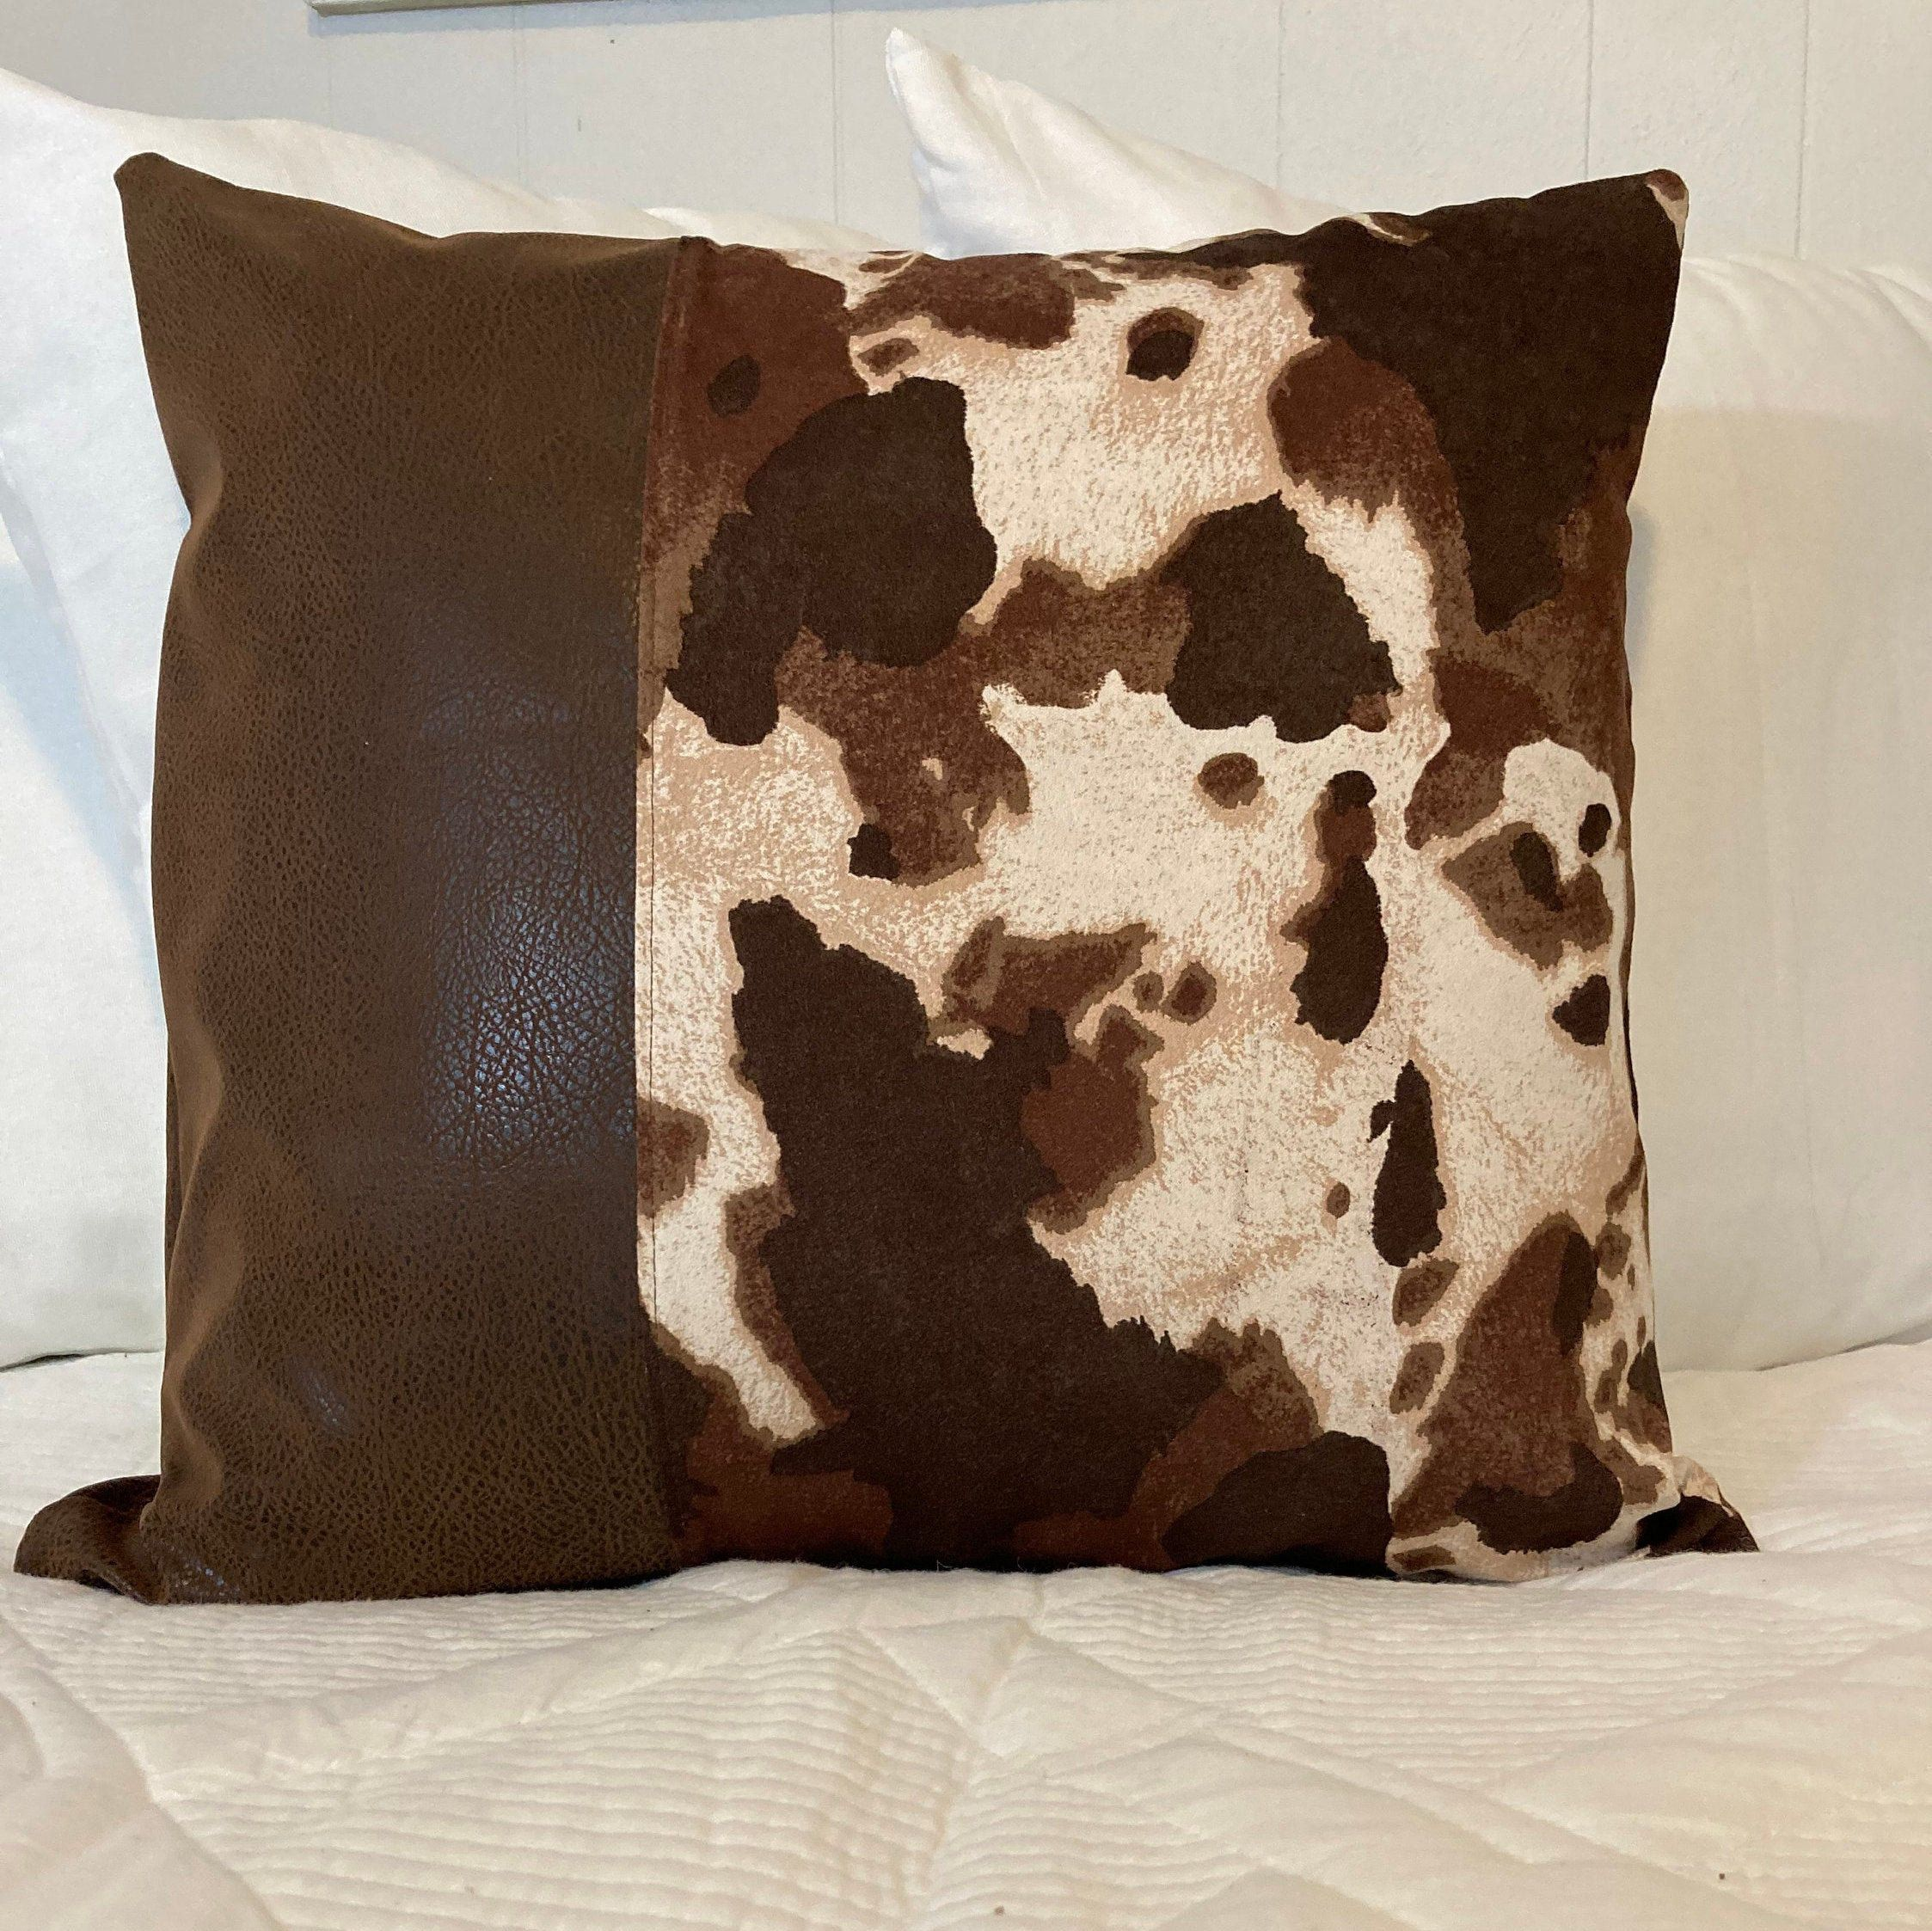 Cowhide Pillow Farmhouse Pillow Cover Country Pillow Cover Cowhide Throw Pillow Cow Pillow In 2020 Cowhide Pillows Country Pillows Farmhouse Pillows